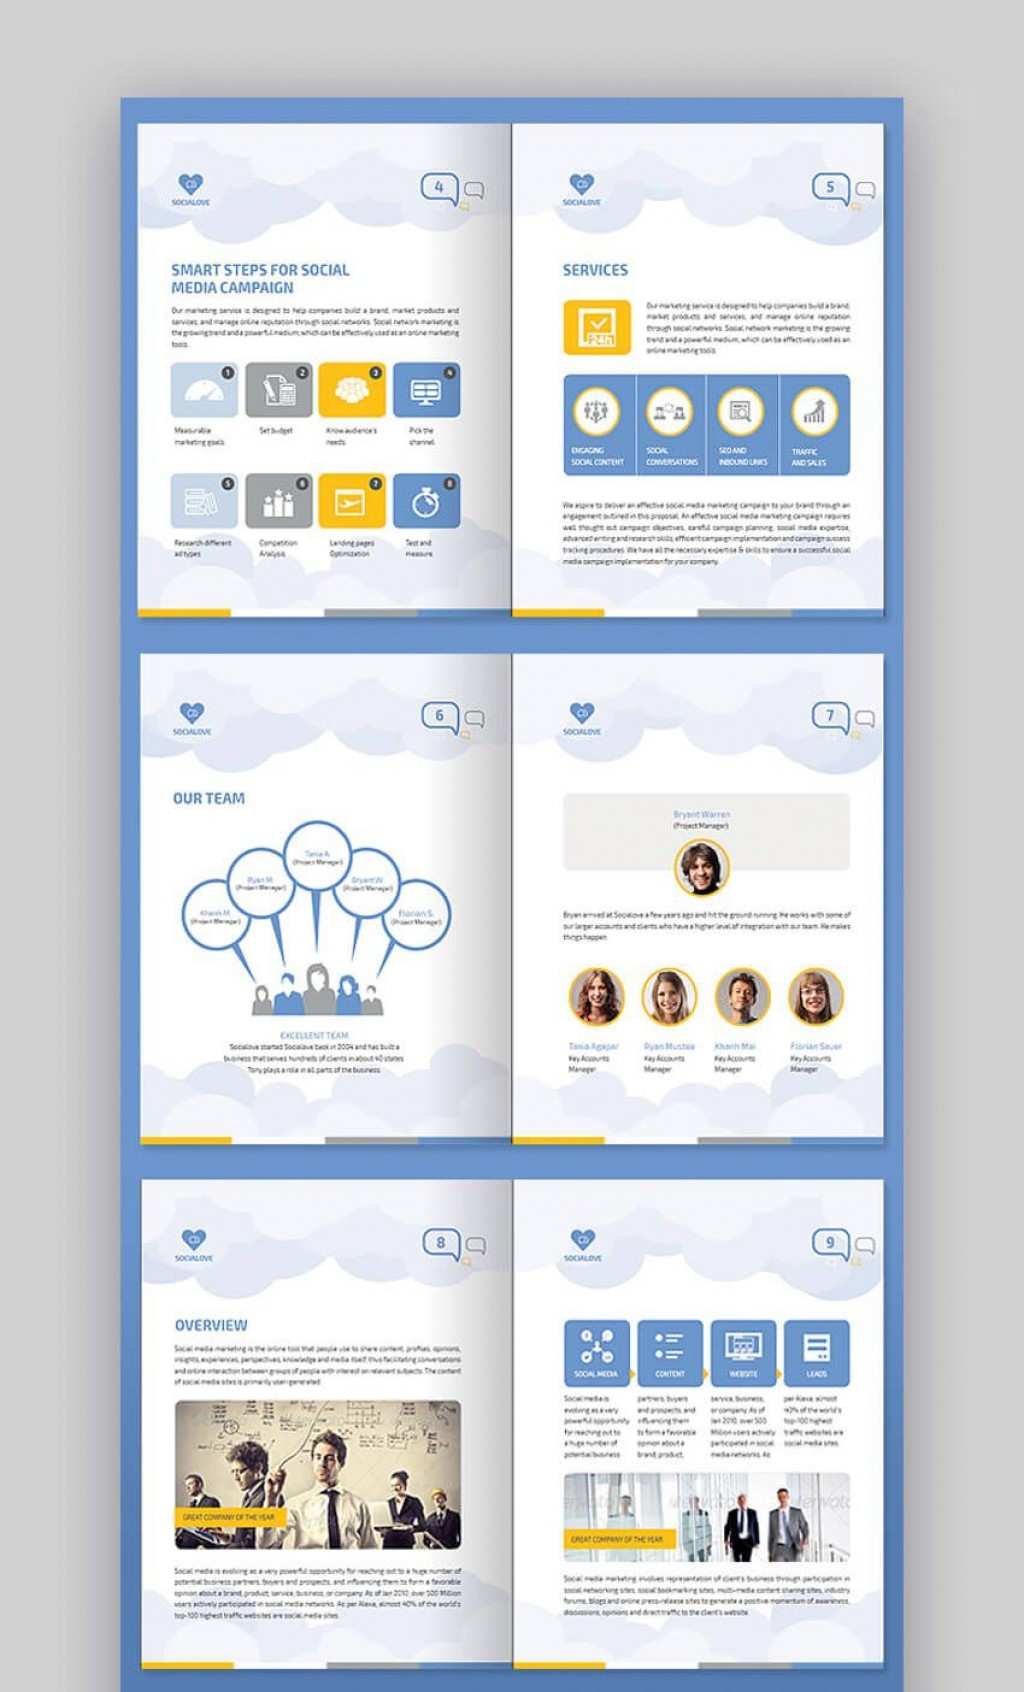 009 Awesome Social Media Proposal Template High Def  Ppt Marketing Word 2019Large